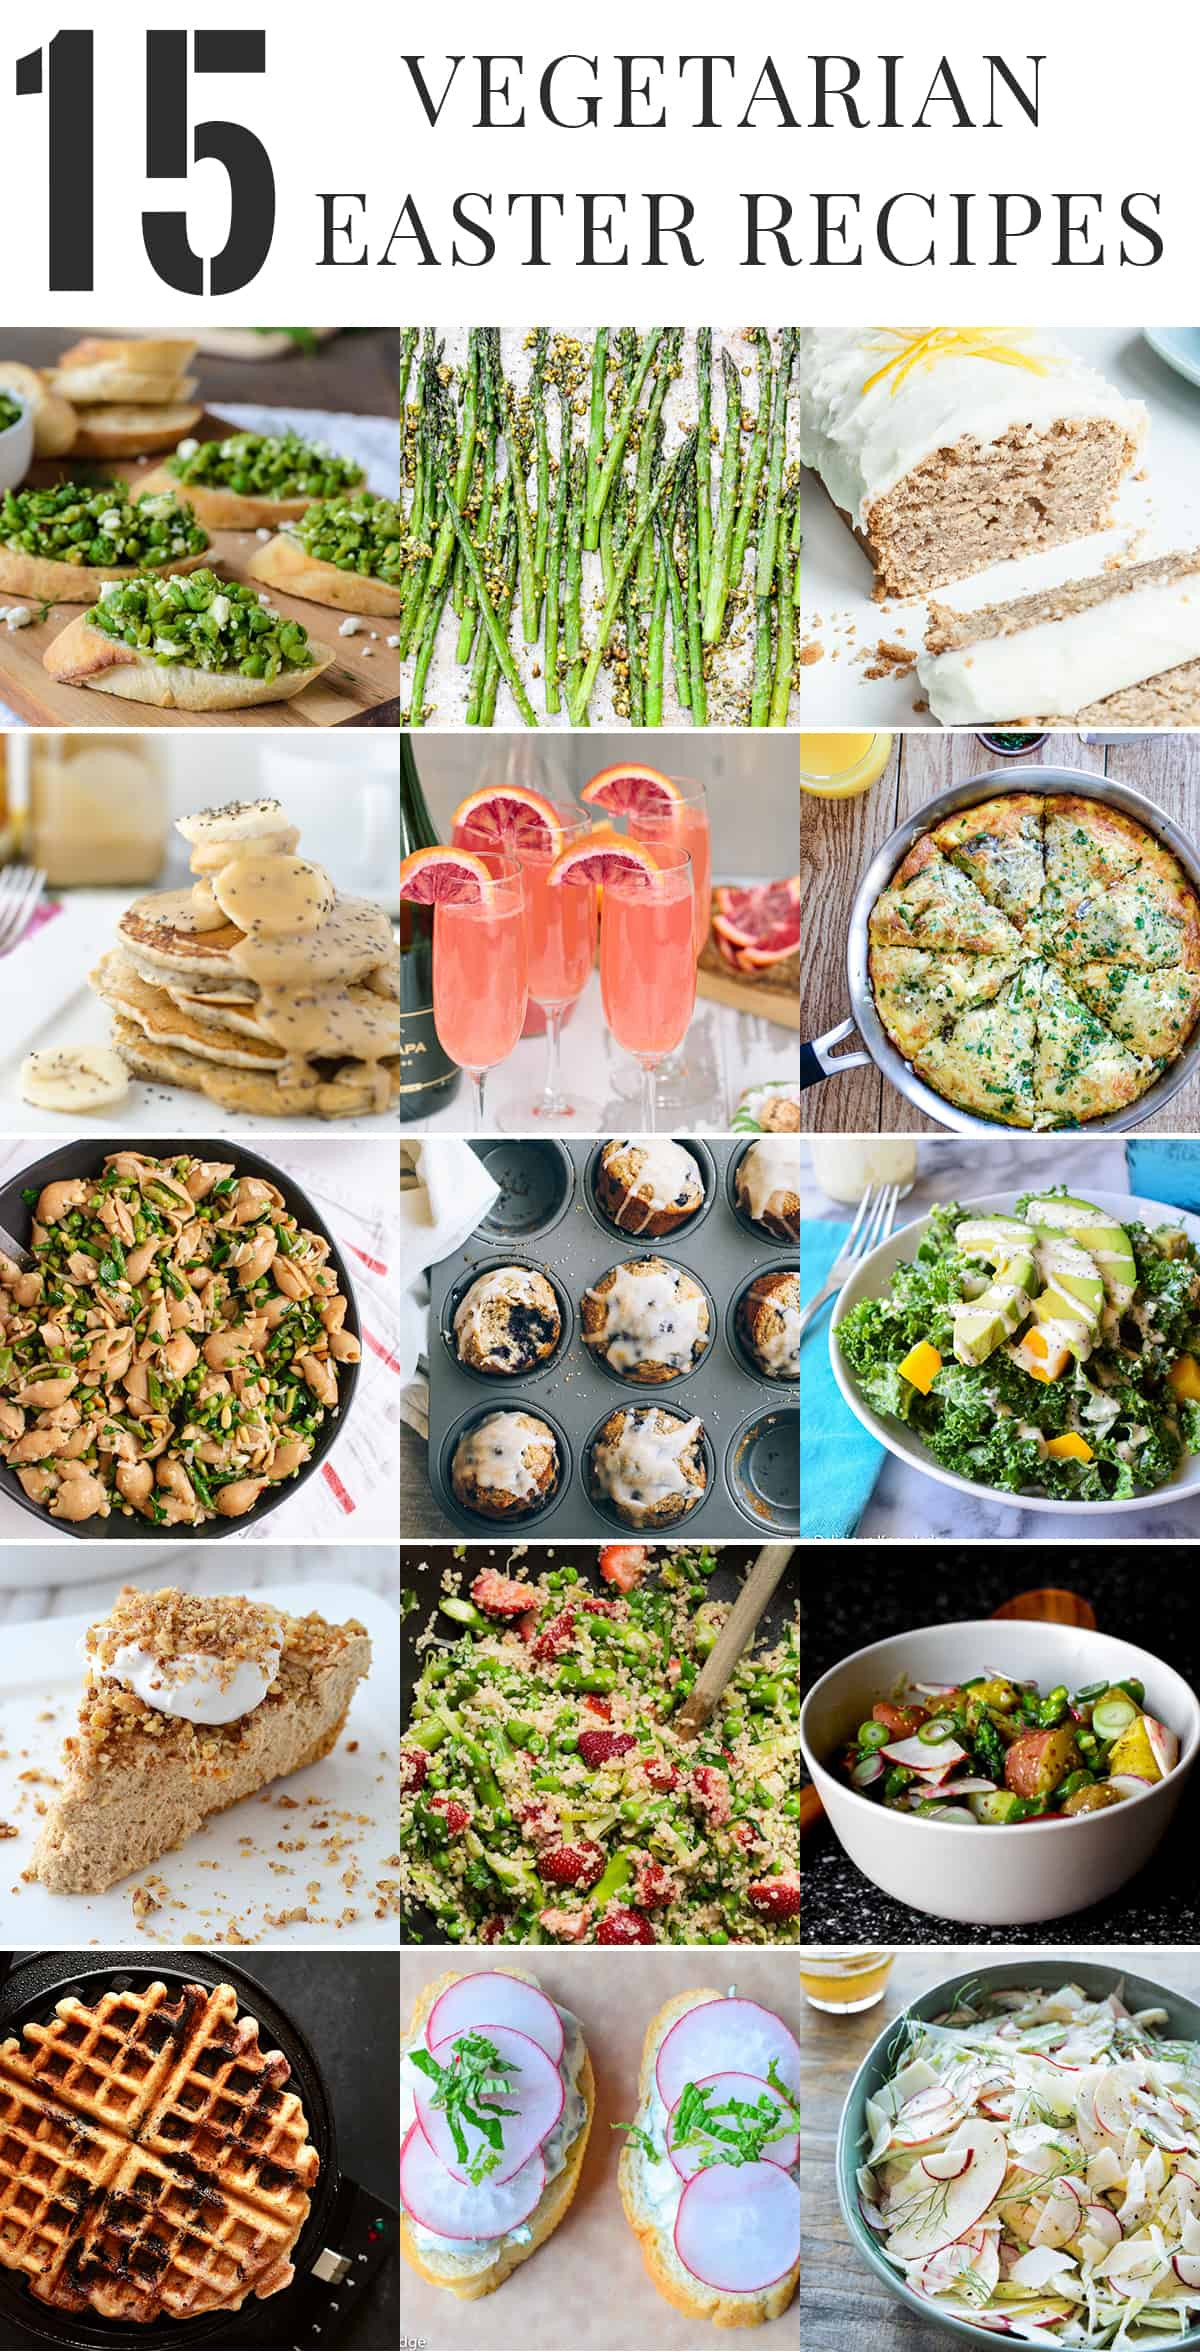 Easter Vegetarian Recipes  Healthy Ve arian Easter Recipes Delish Knowledge